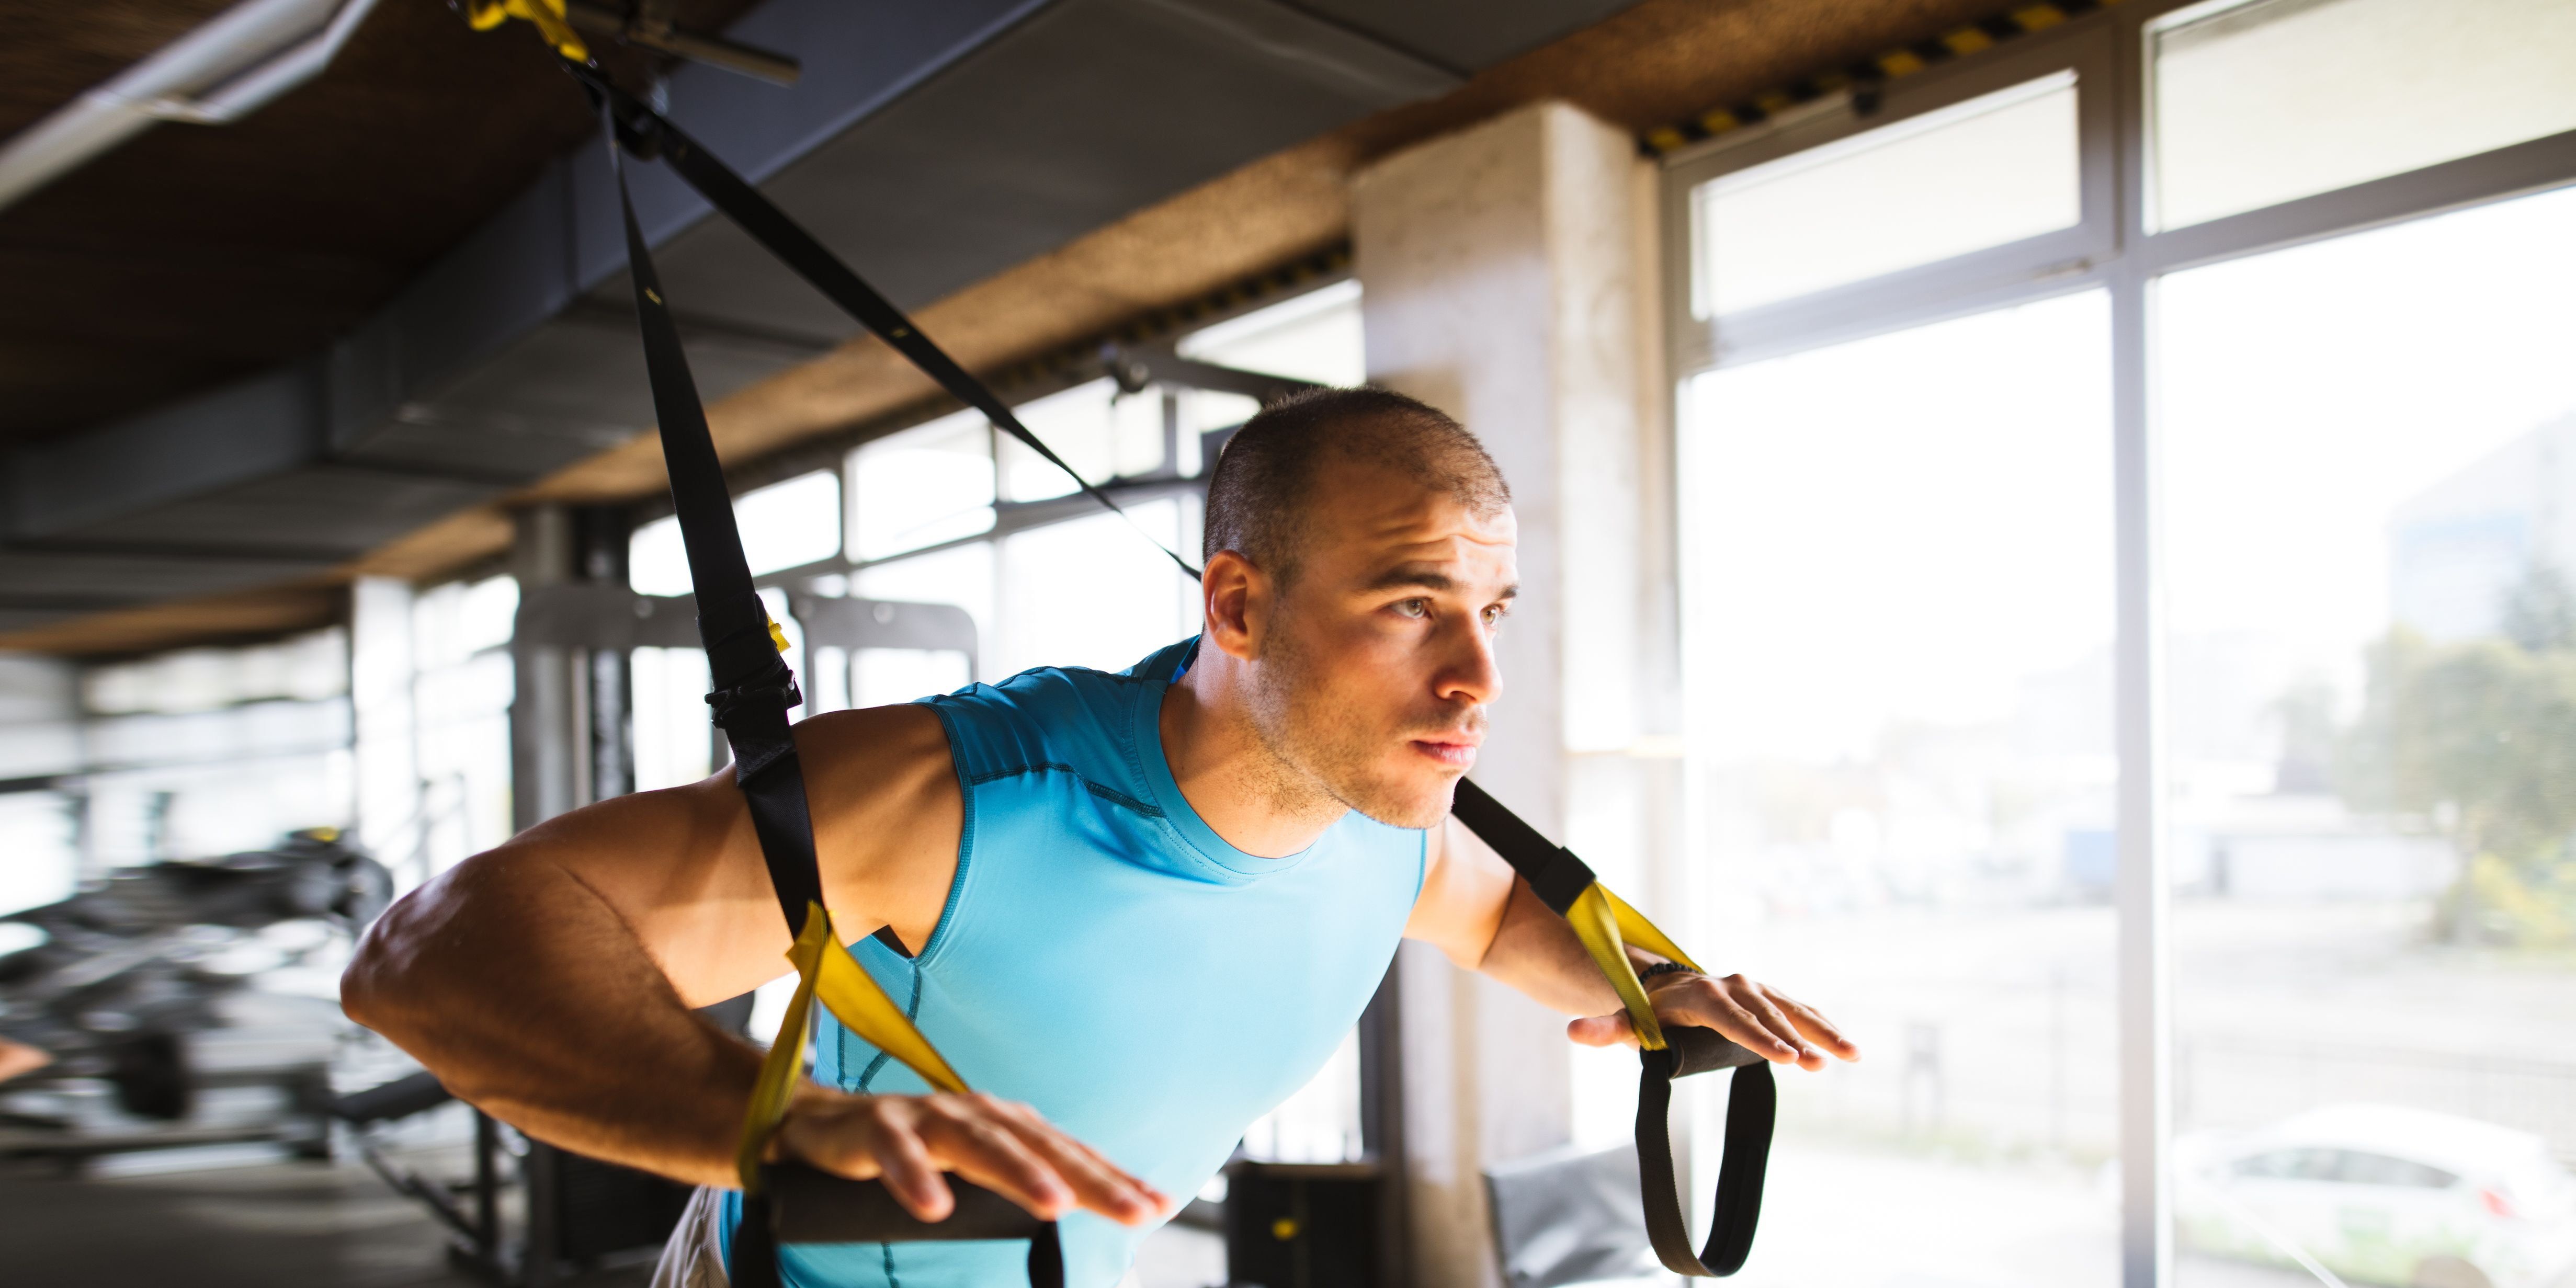 Man doing arm exercises with suspension straps at gym